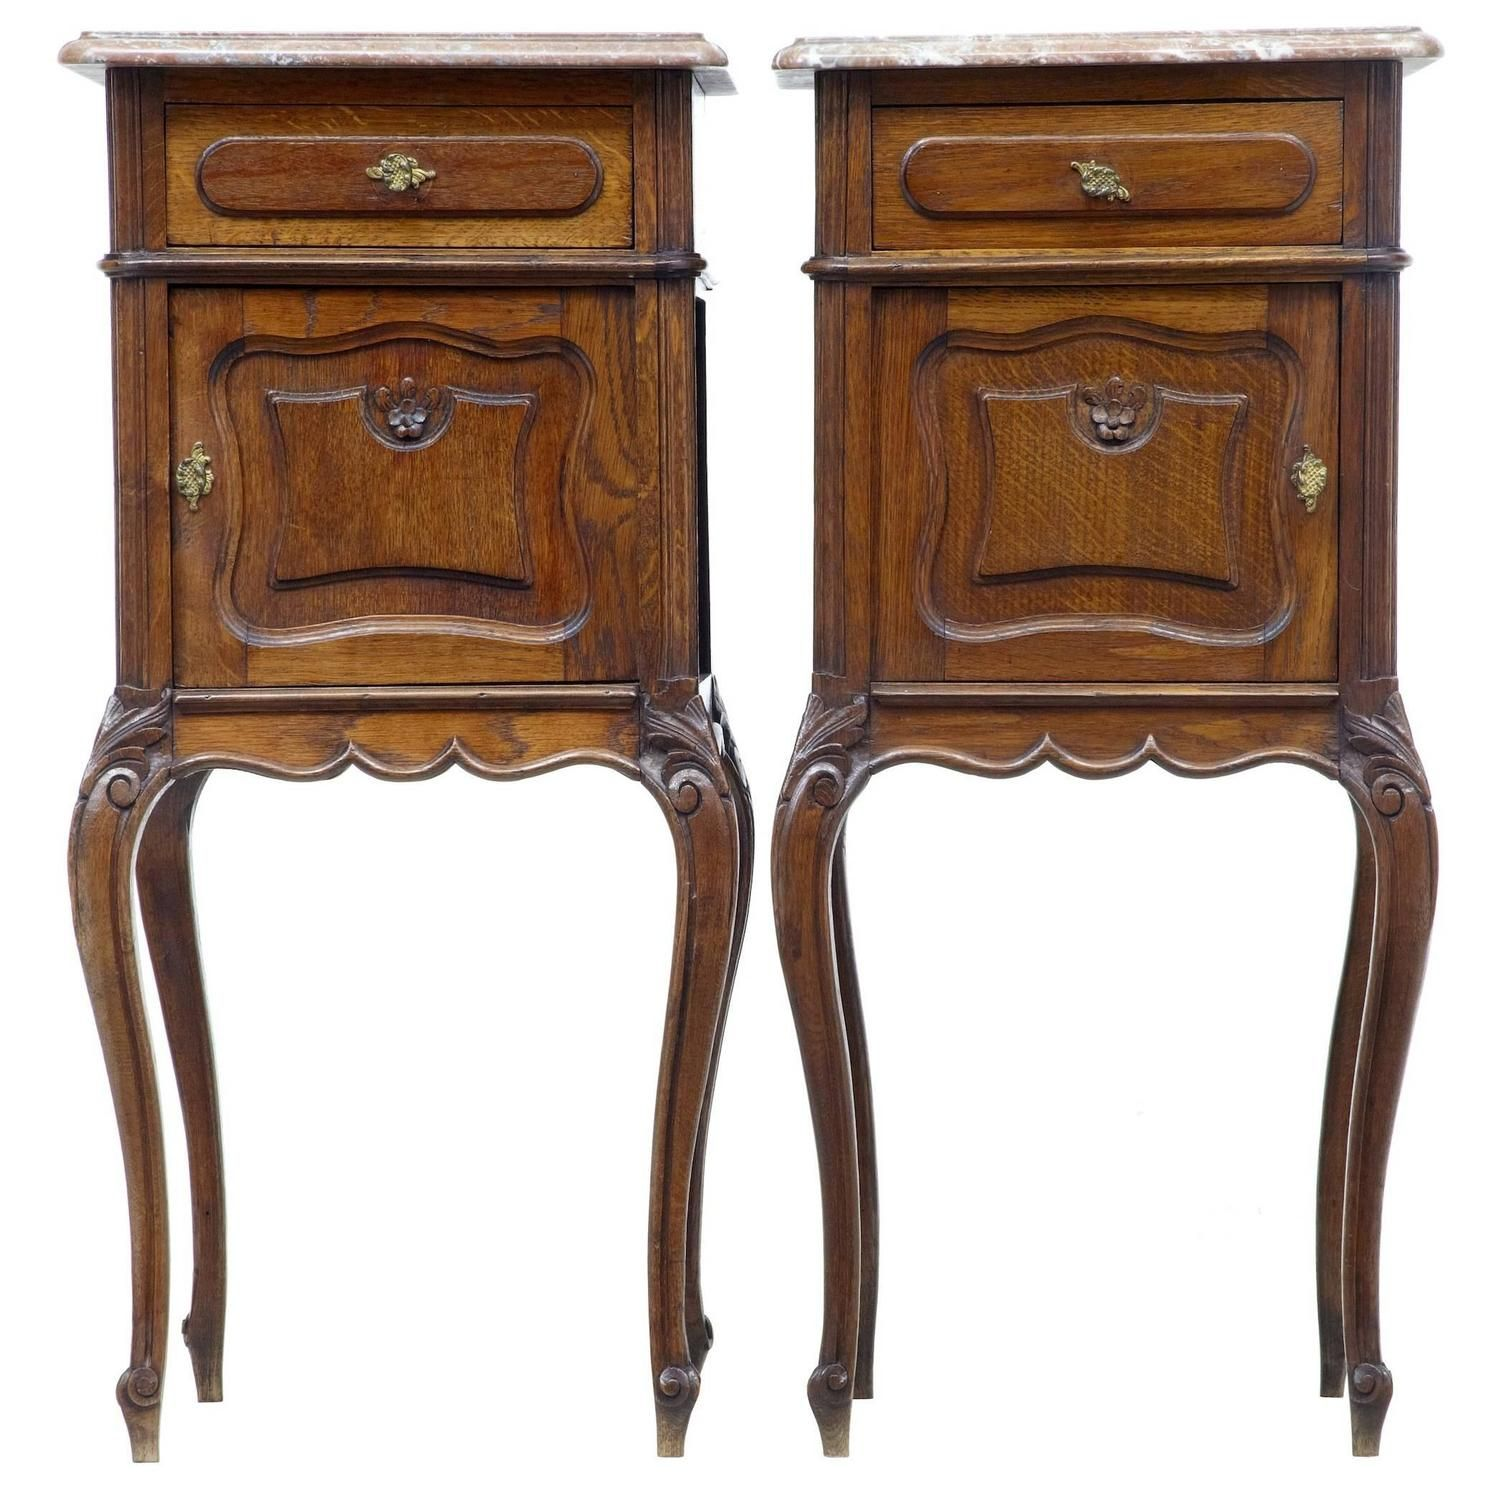 Pair of th century french oak marbletop nightstands marble top